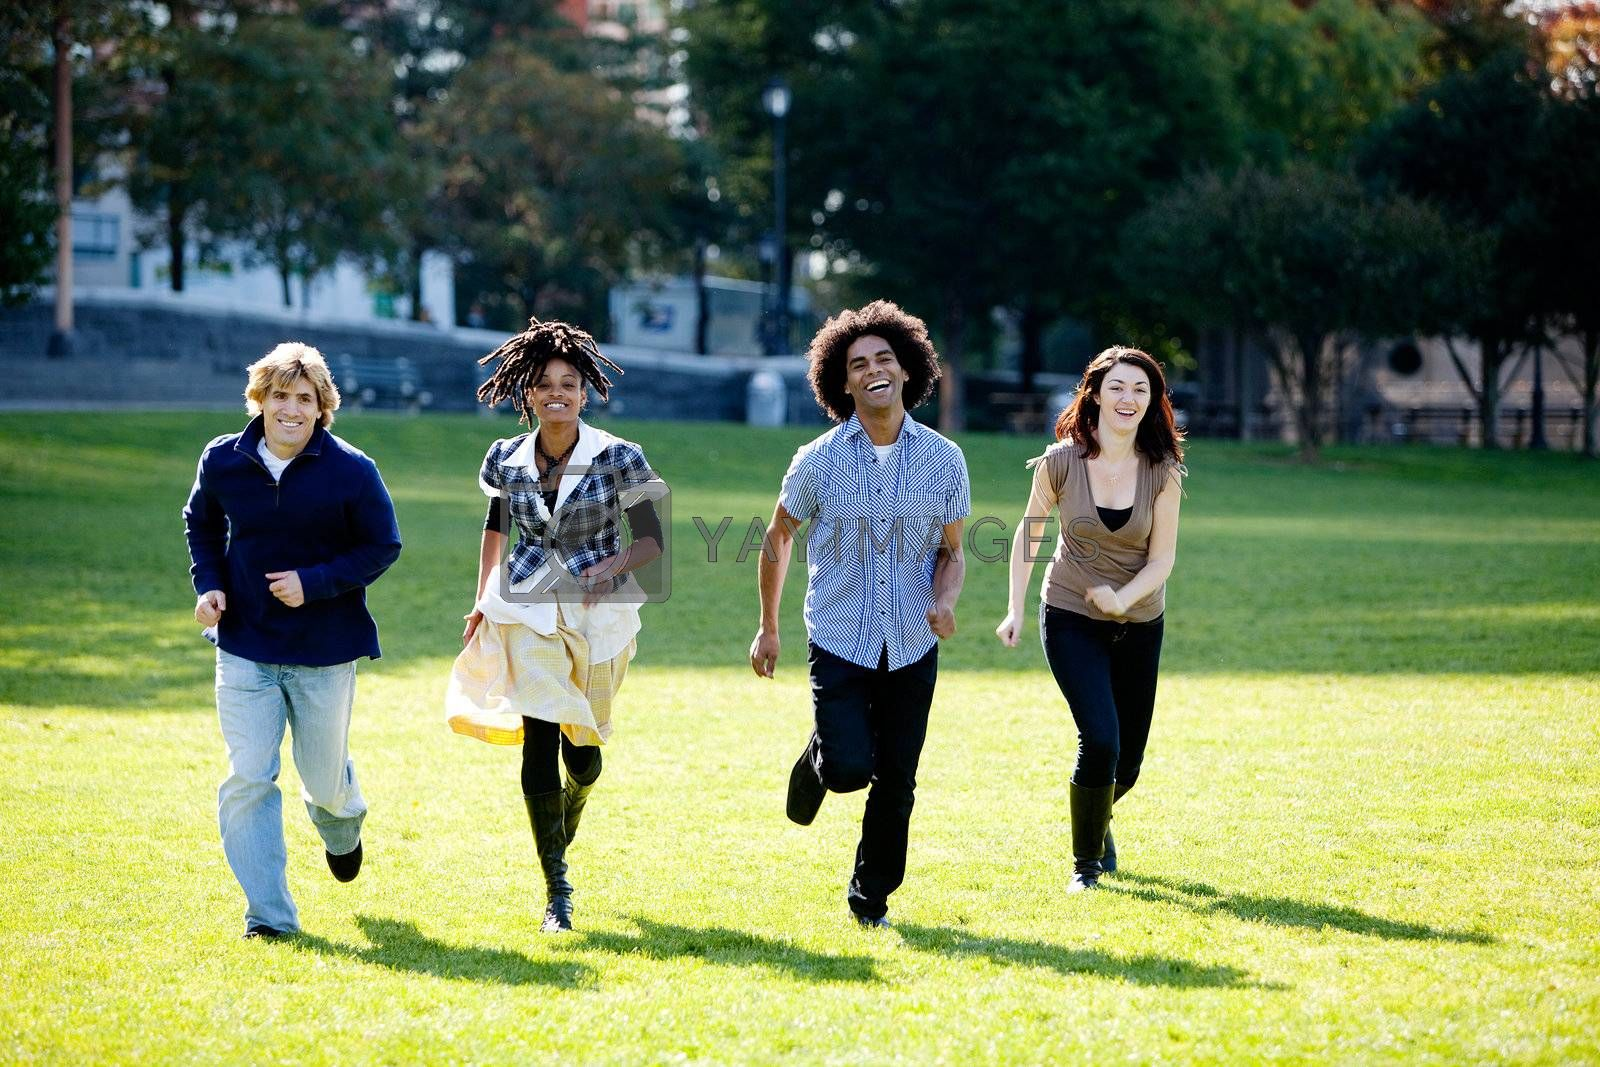 A group of people in a park, running towards the camera